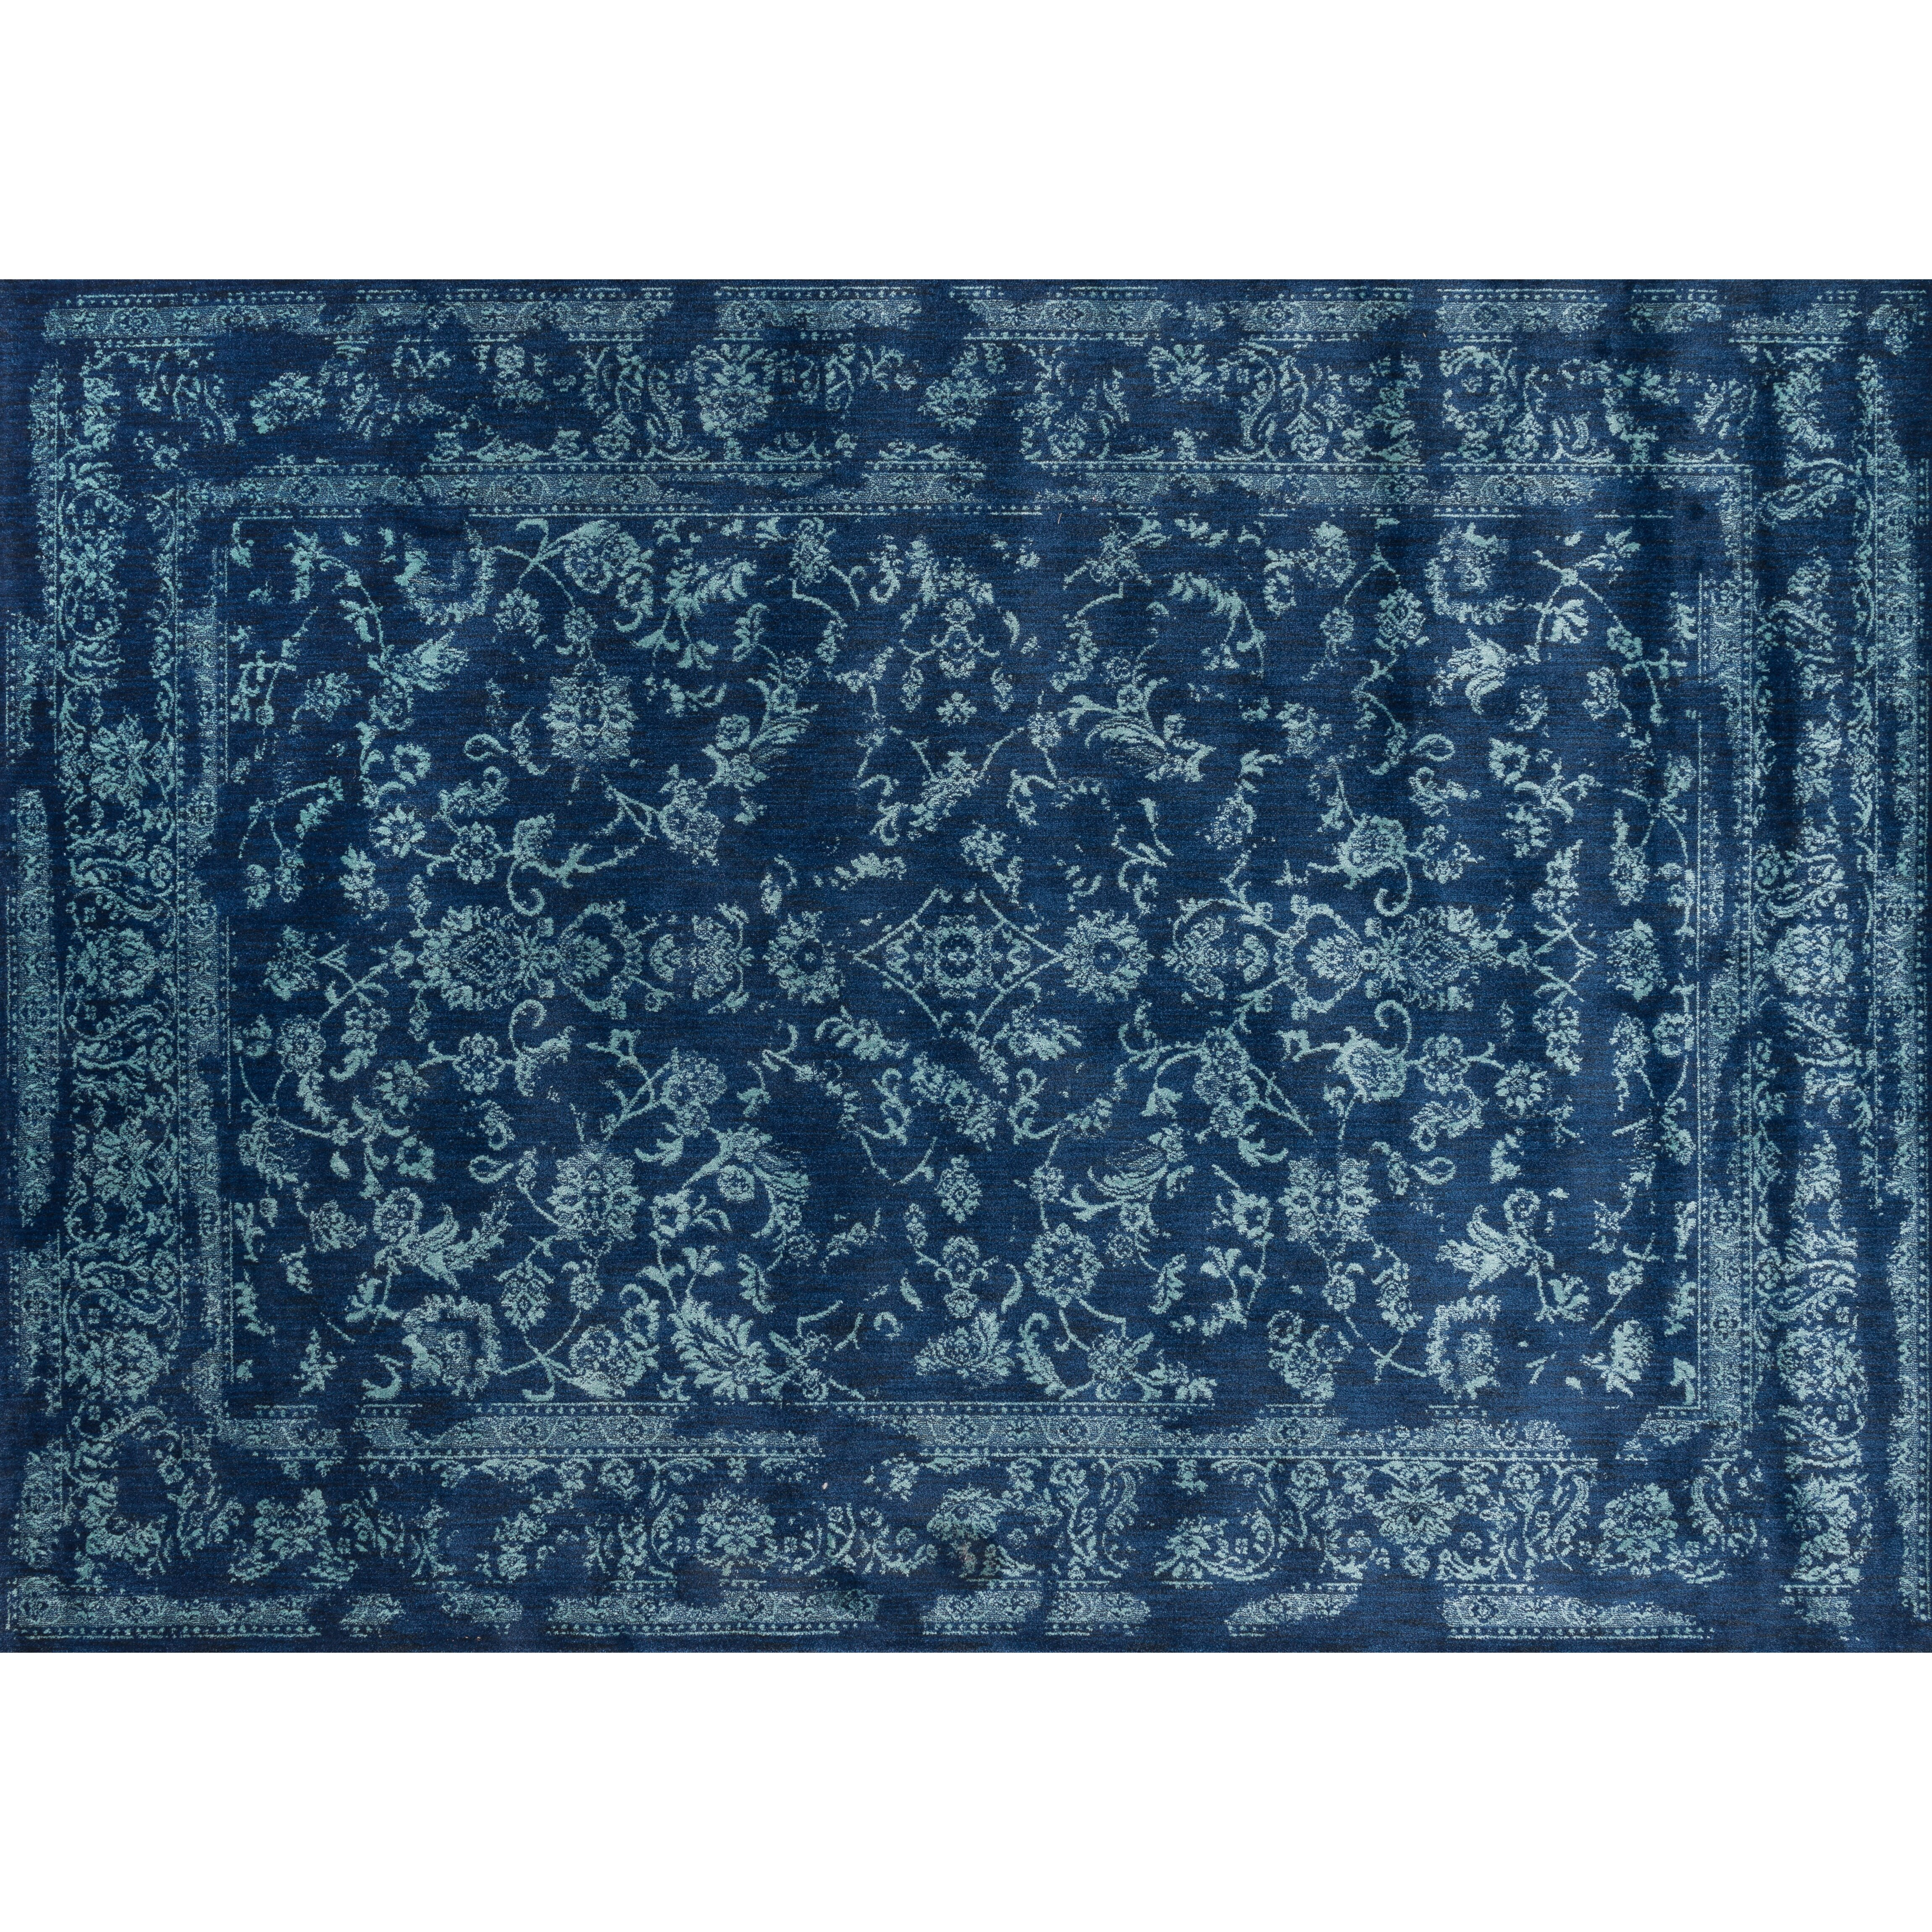 Loloi Rugs Florence Navy Aqua Area Rug amp Reviews Wayfair : Florence Navy Aqua Area Rug FLRNFO 01NVAQ from www.wayfair.com size 4600 x 4600 jpeg 6961kB